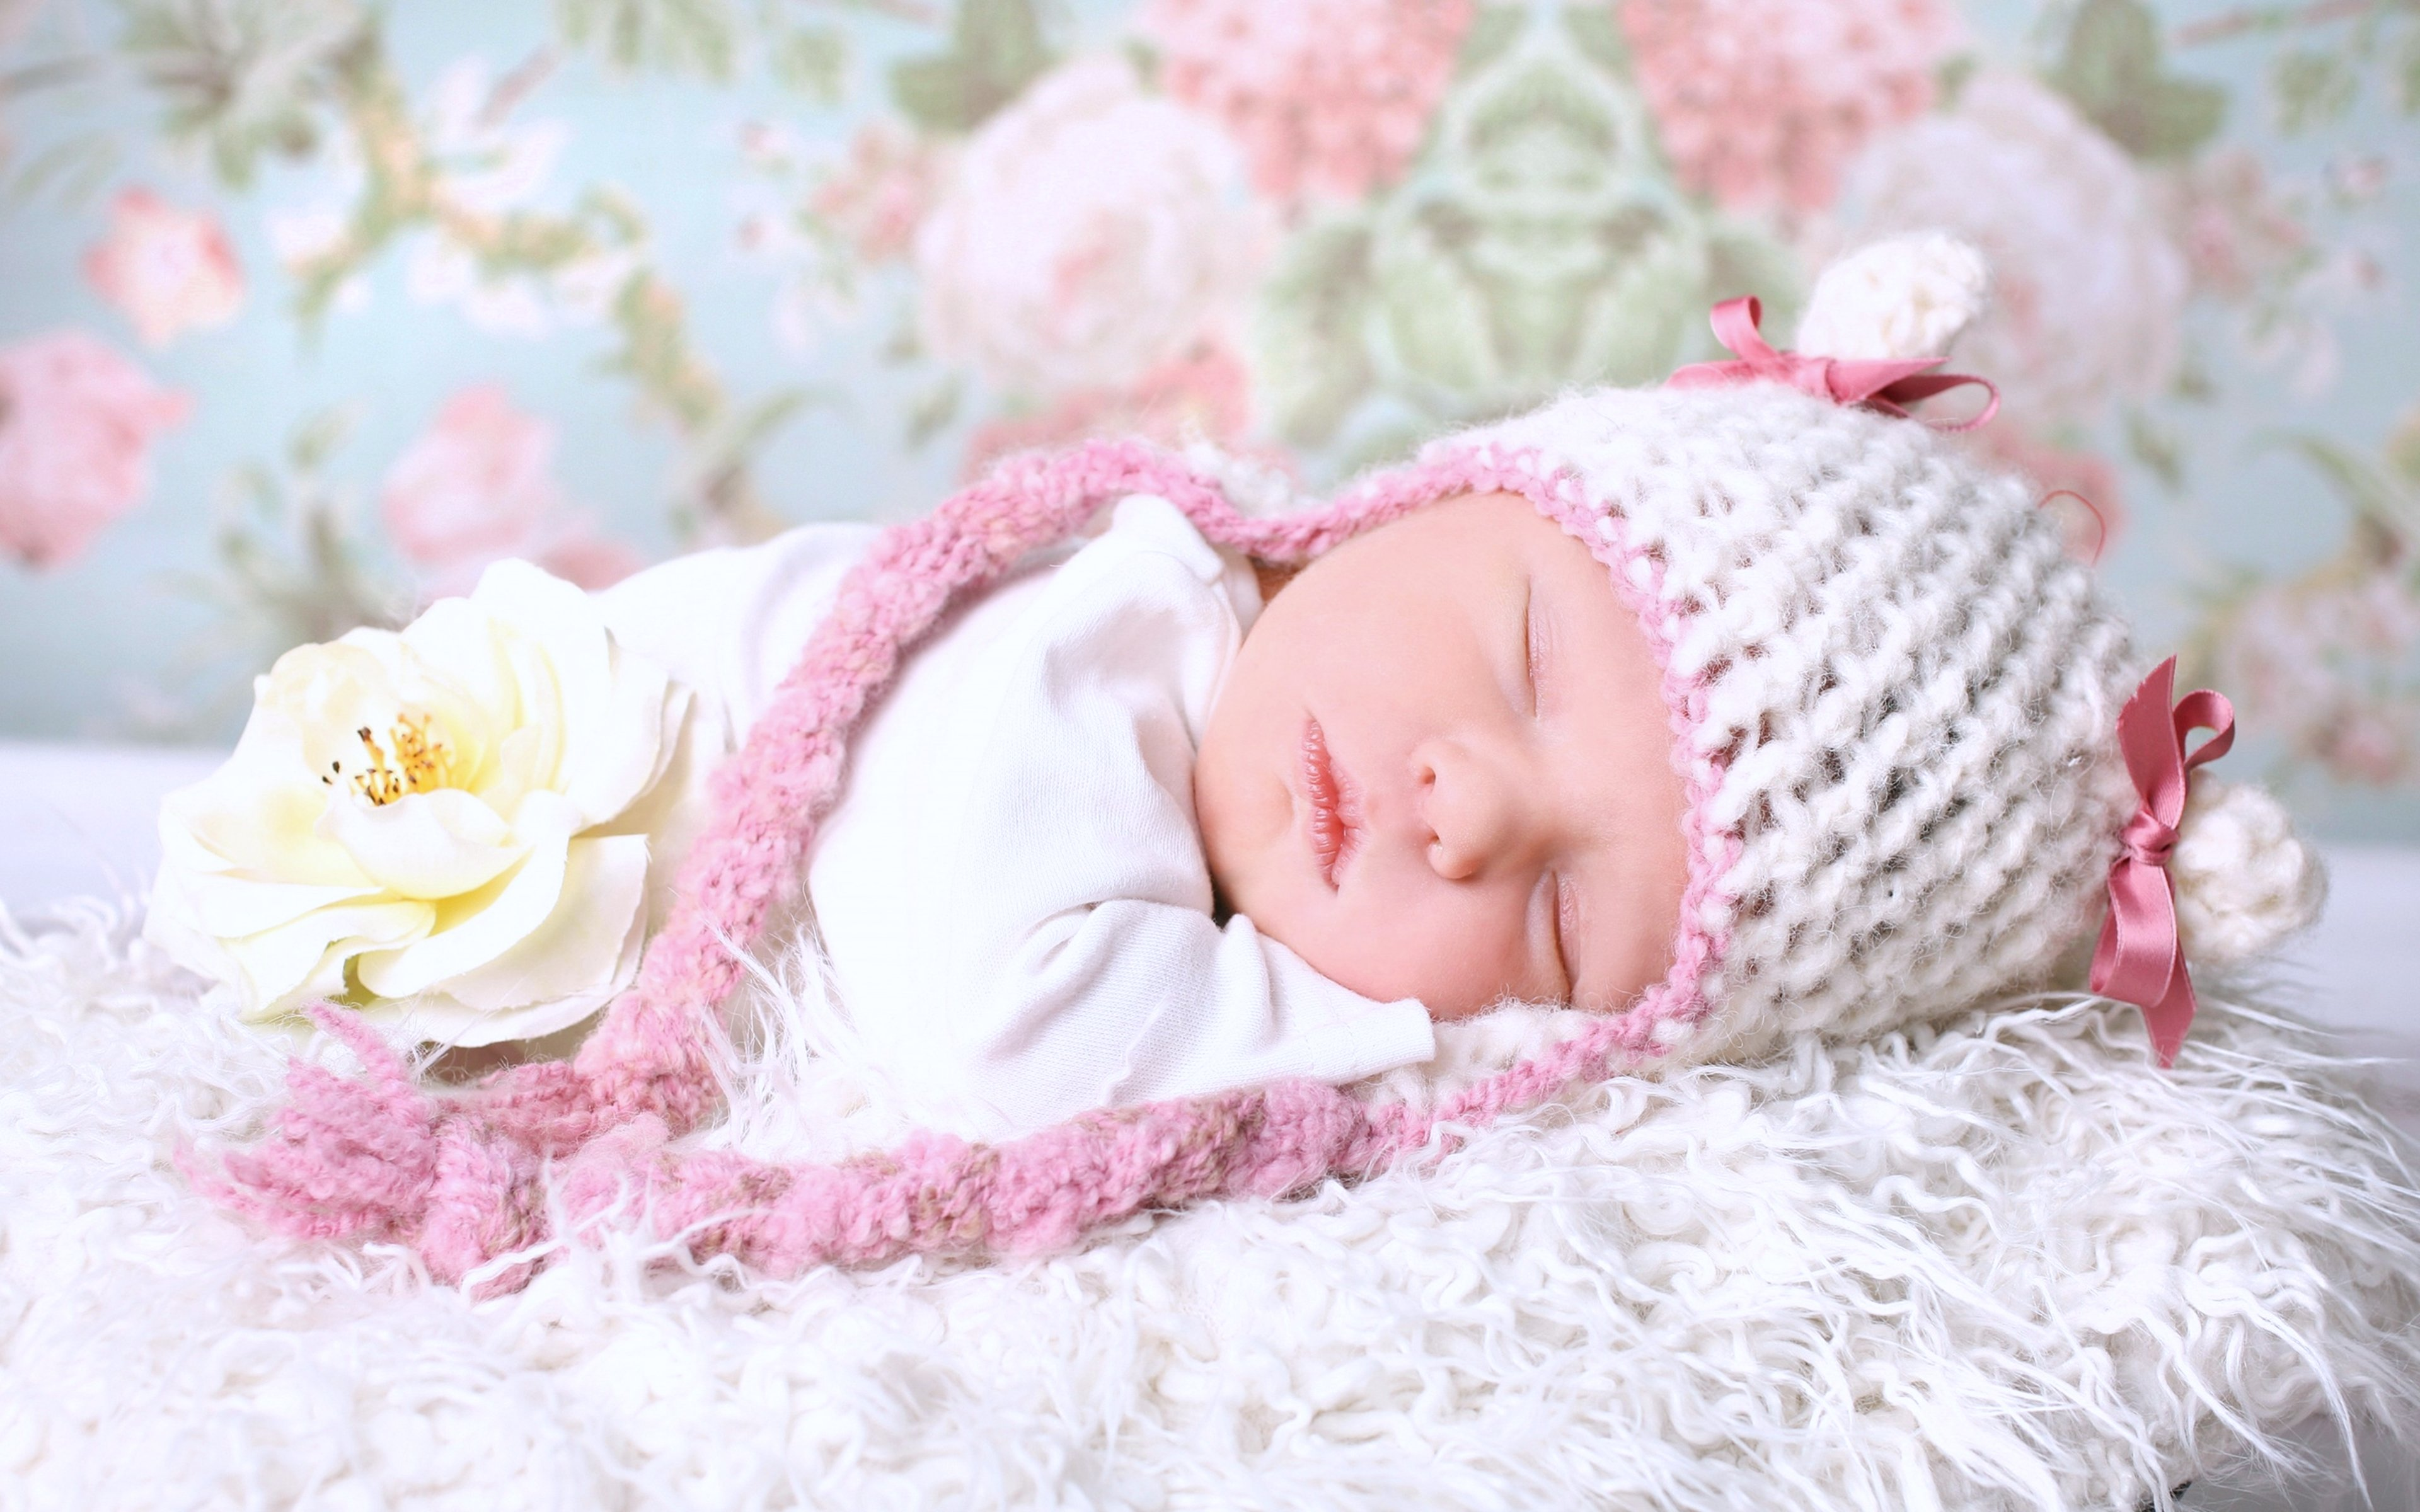 Kids children childhood baby life little sleep bed beautiful flower kids children childhood baby life little sleep bed beautiful flower wallpaper 3840x2400 649082 wallpaperup mightylinksfo